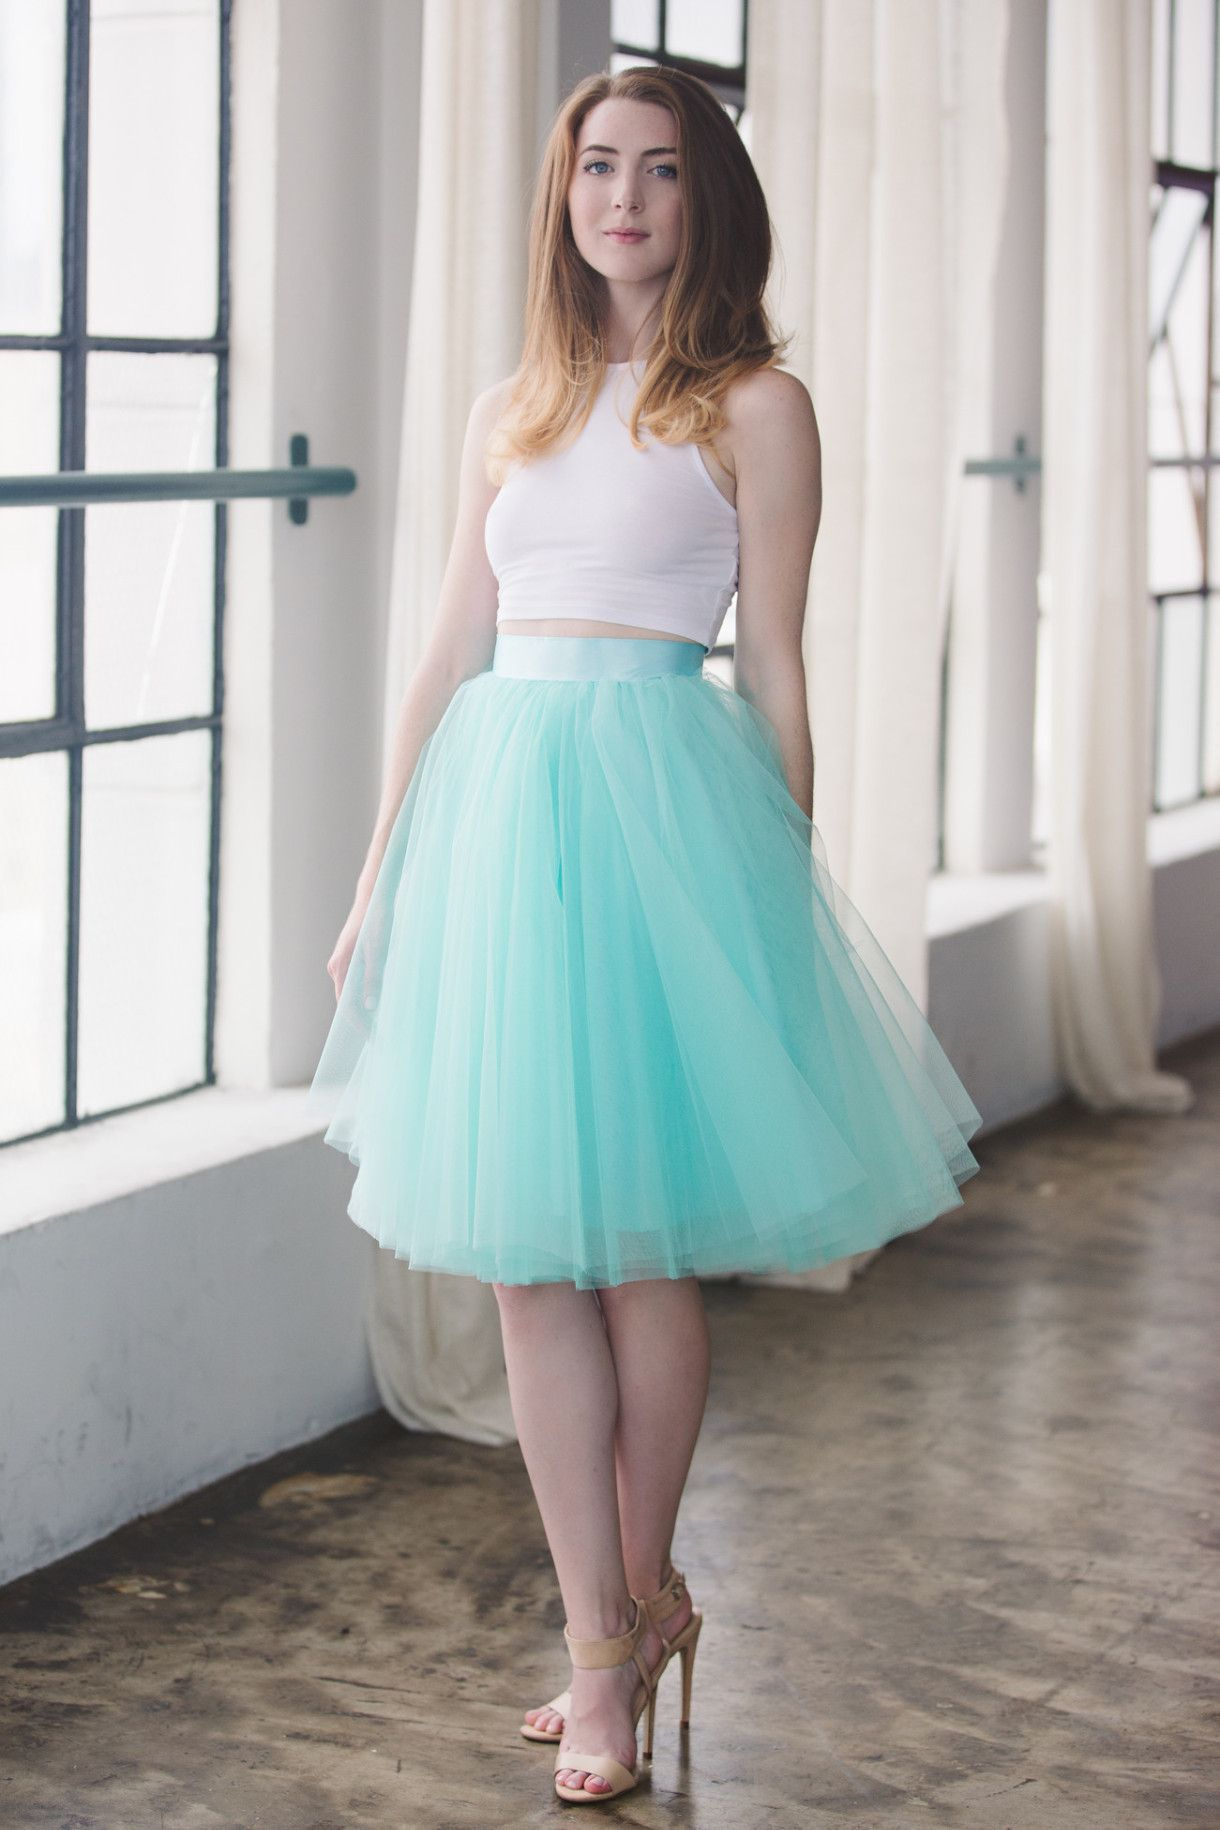 6ce41bdcad Space 46 Boutique Tulle Skirt ... My Dream Skirt Oh My Gahhh!! #Fashion  #WomensFashion #Space46 #Space46Boutique #Tulle #TulleSkirt #Skirts # ...